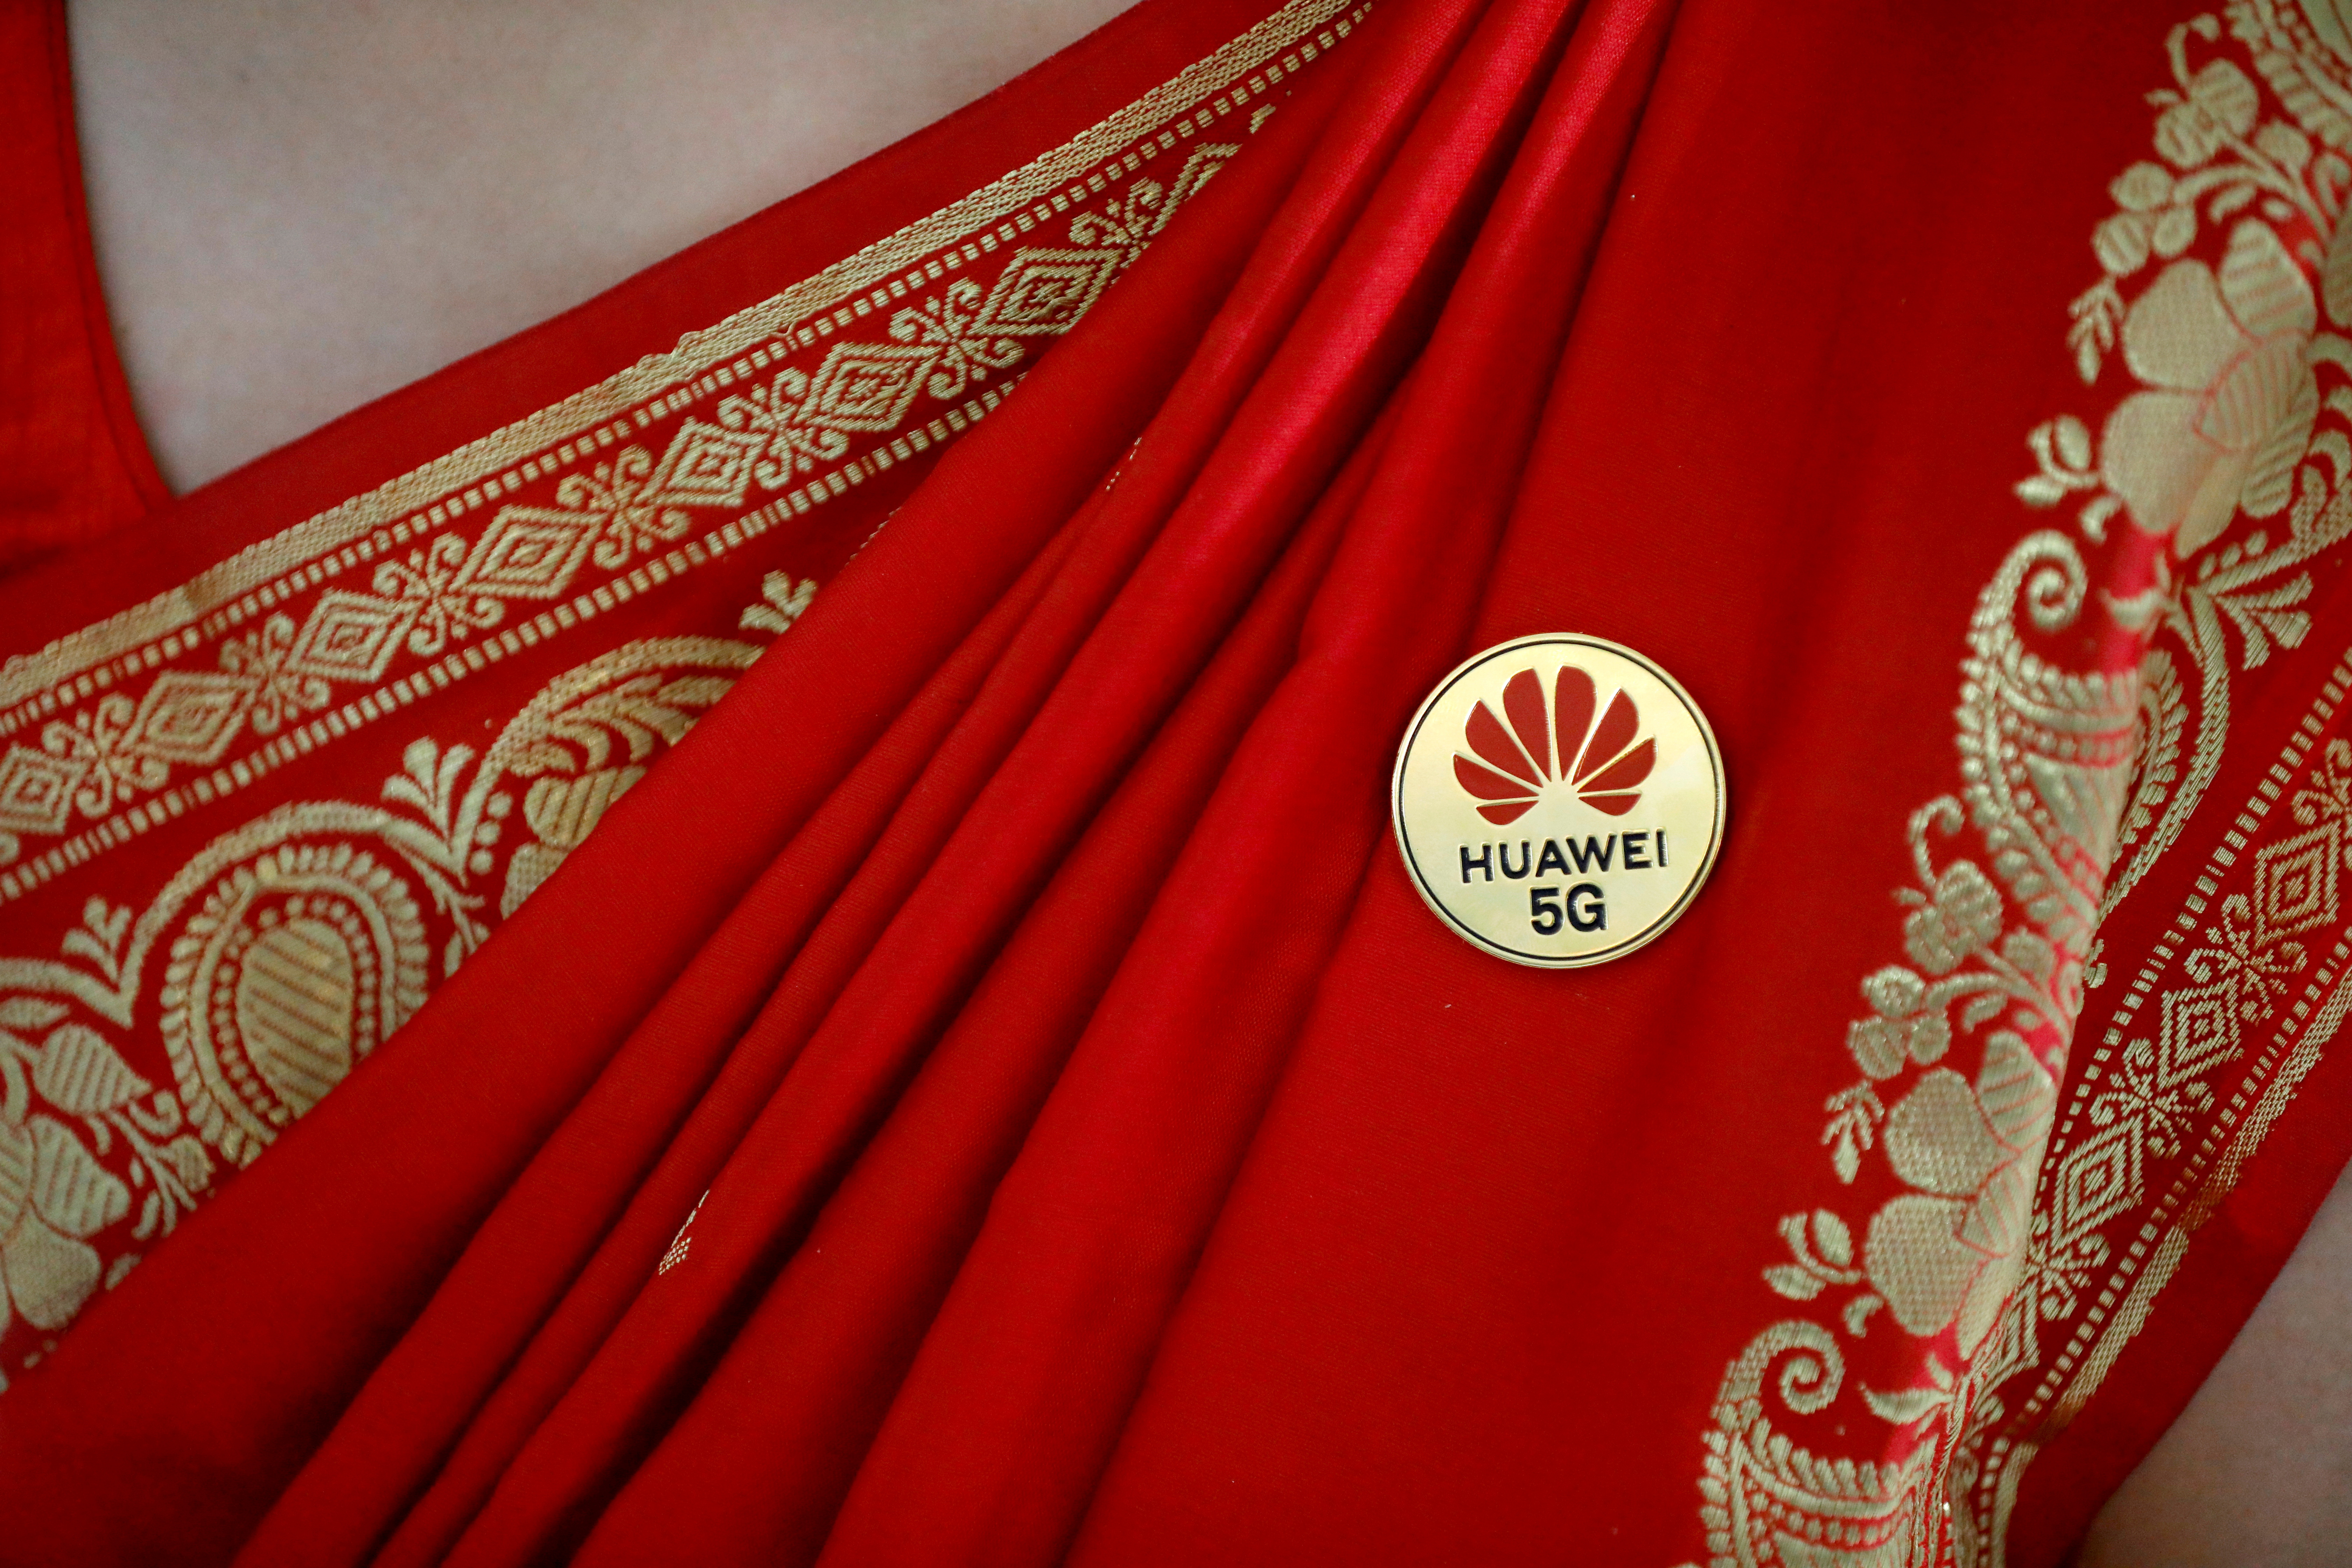 Huawei's logo is seen on a badge pinned on a saree of a lady at the India Mobile Congress in New Delhi, India, October 14, 2019. REUTERS/Anushree Fadnavis